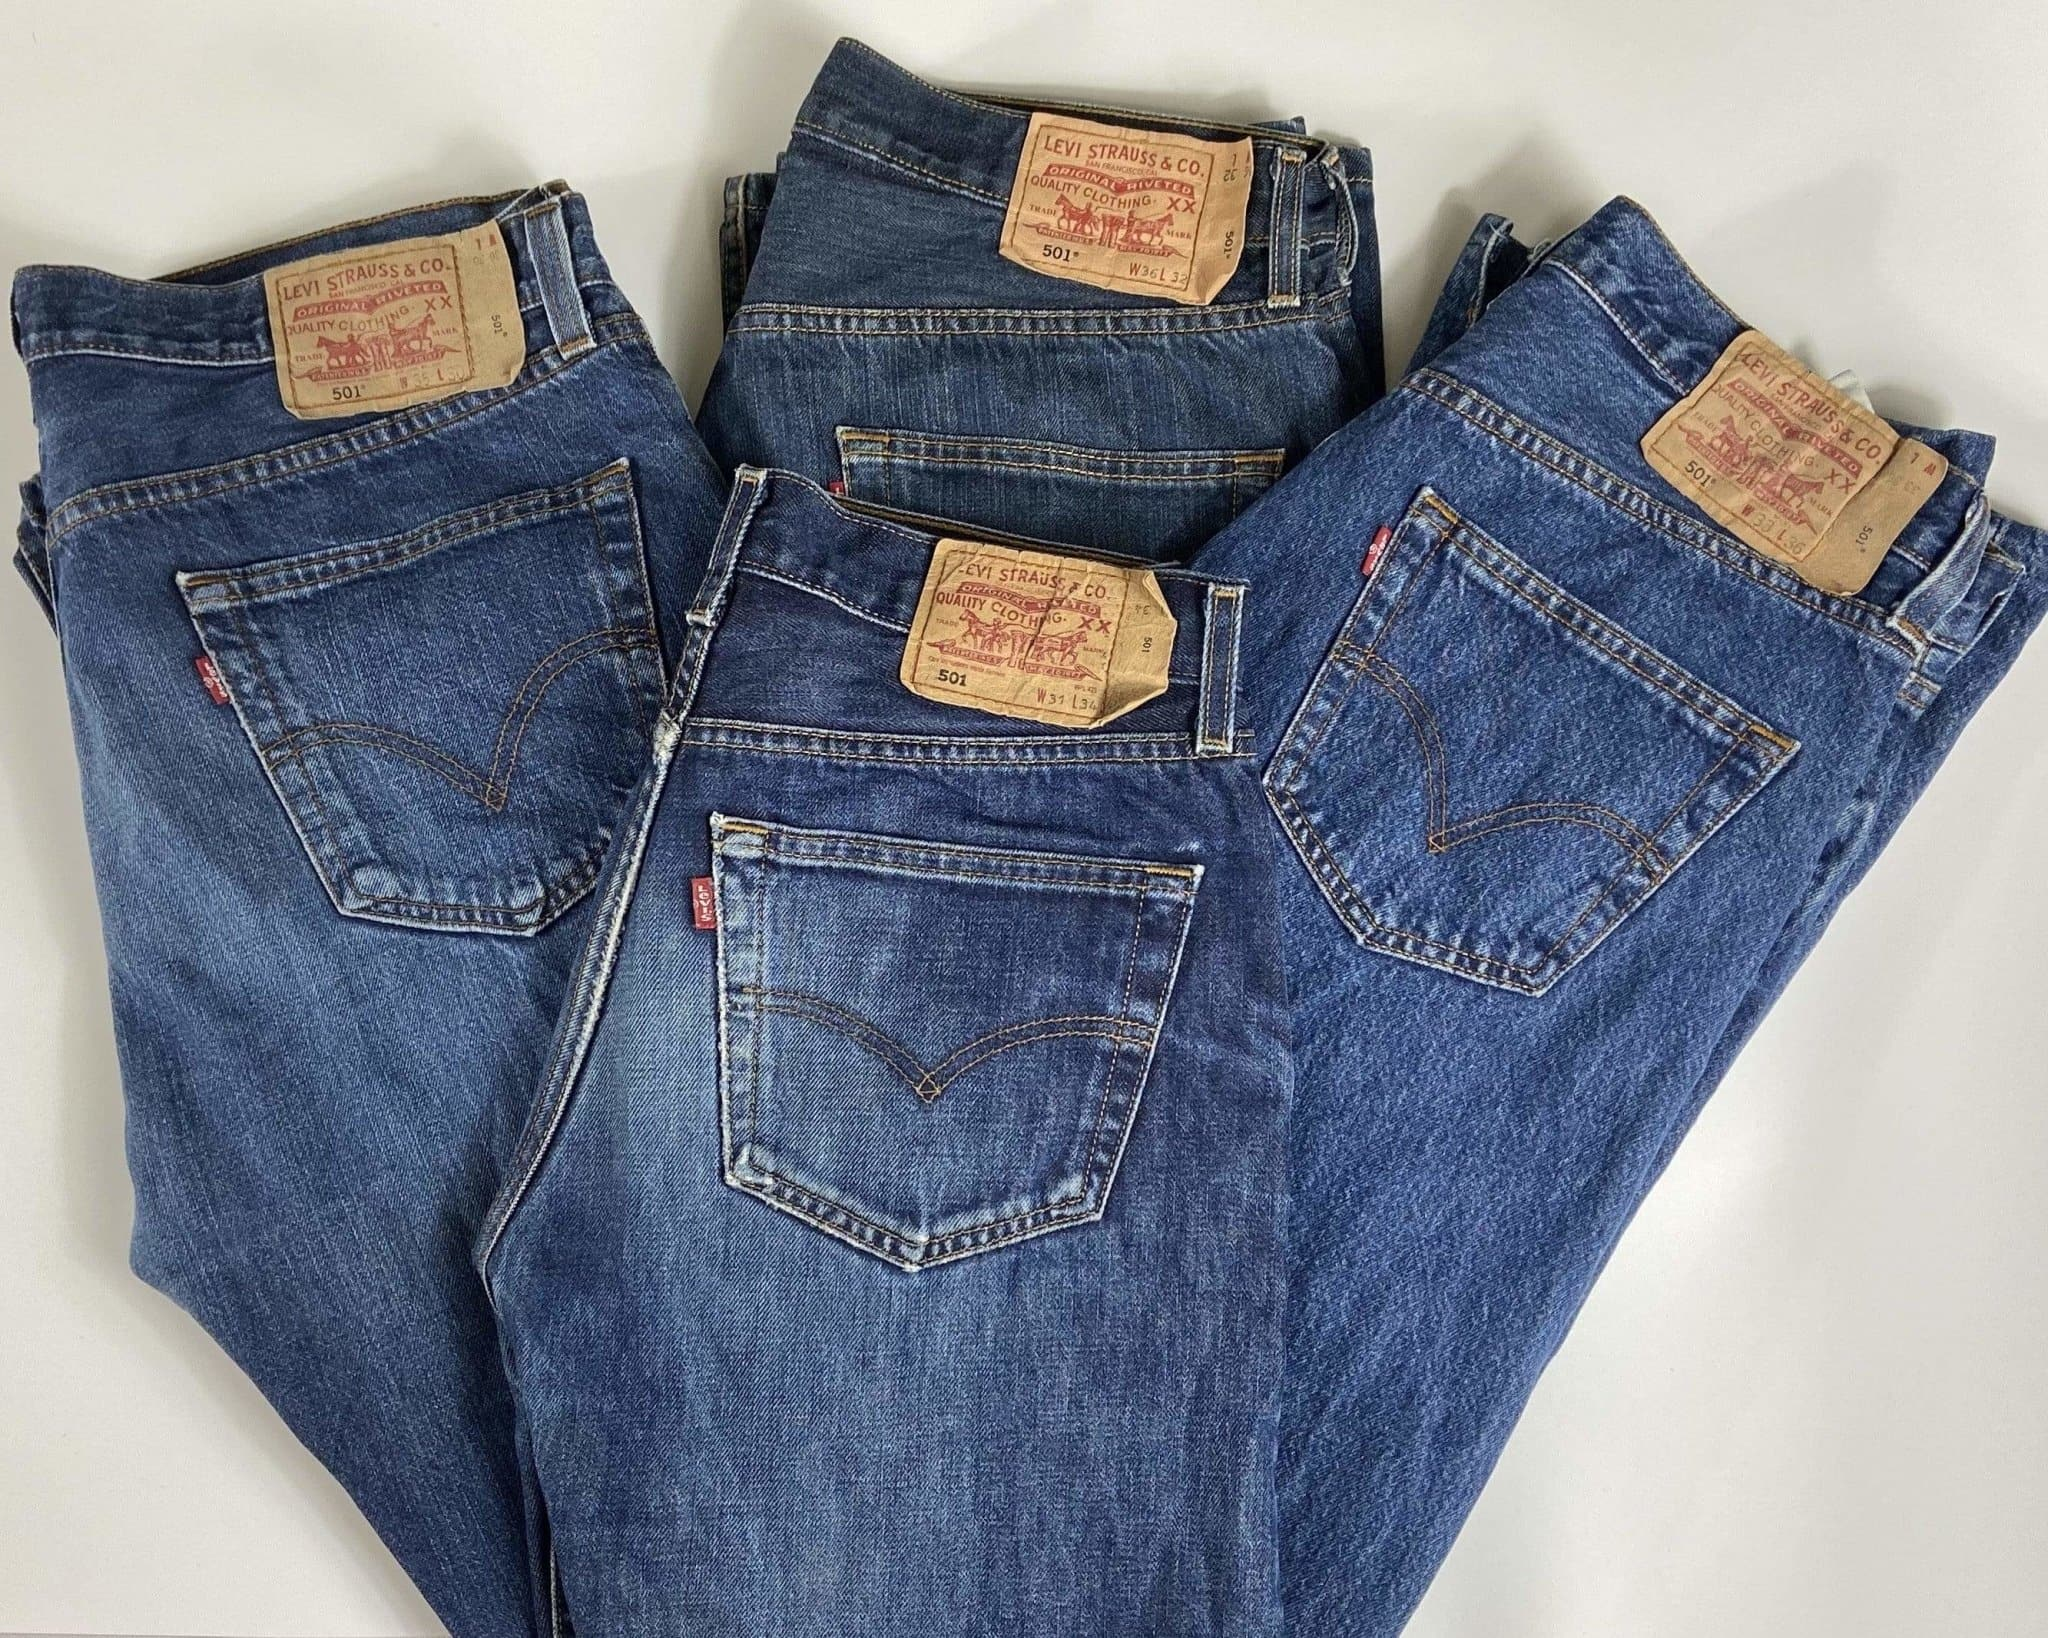 Vintage Levi's Regular Fit 501 Jeans W36 L36 (LVB4) - Discounted Deals UK